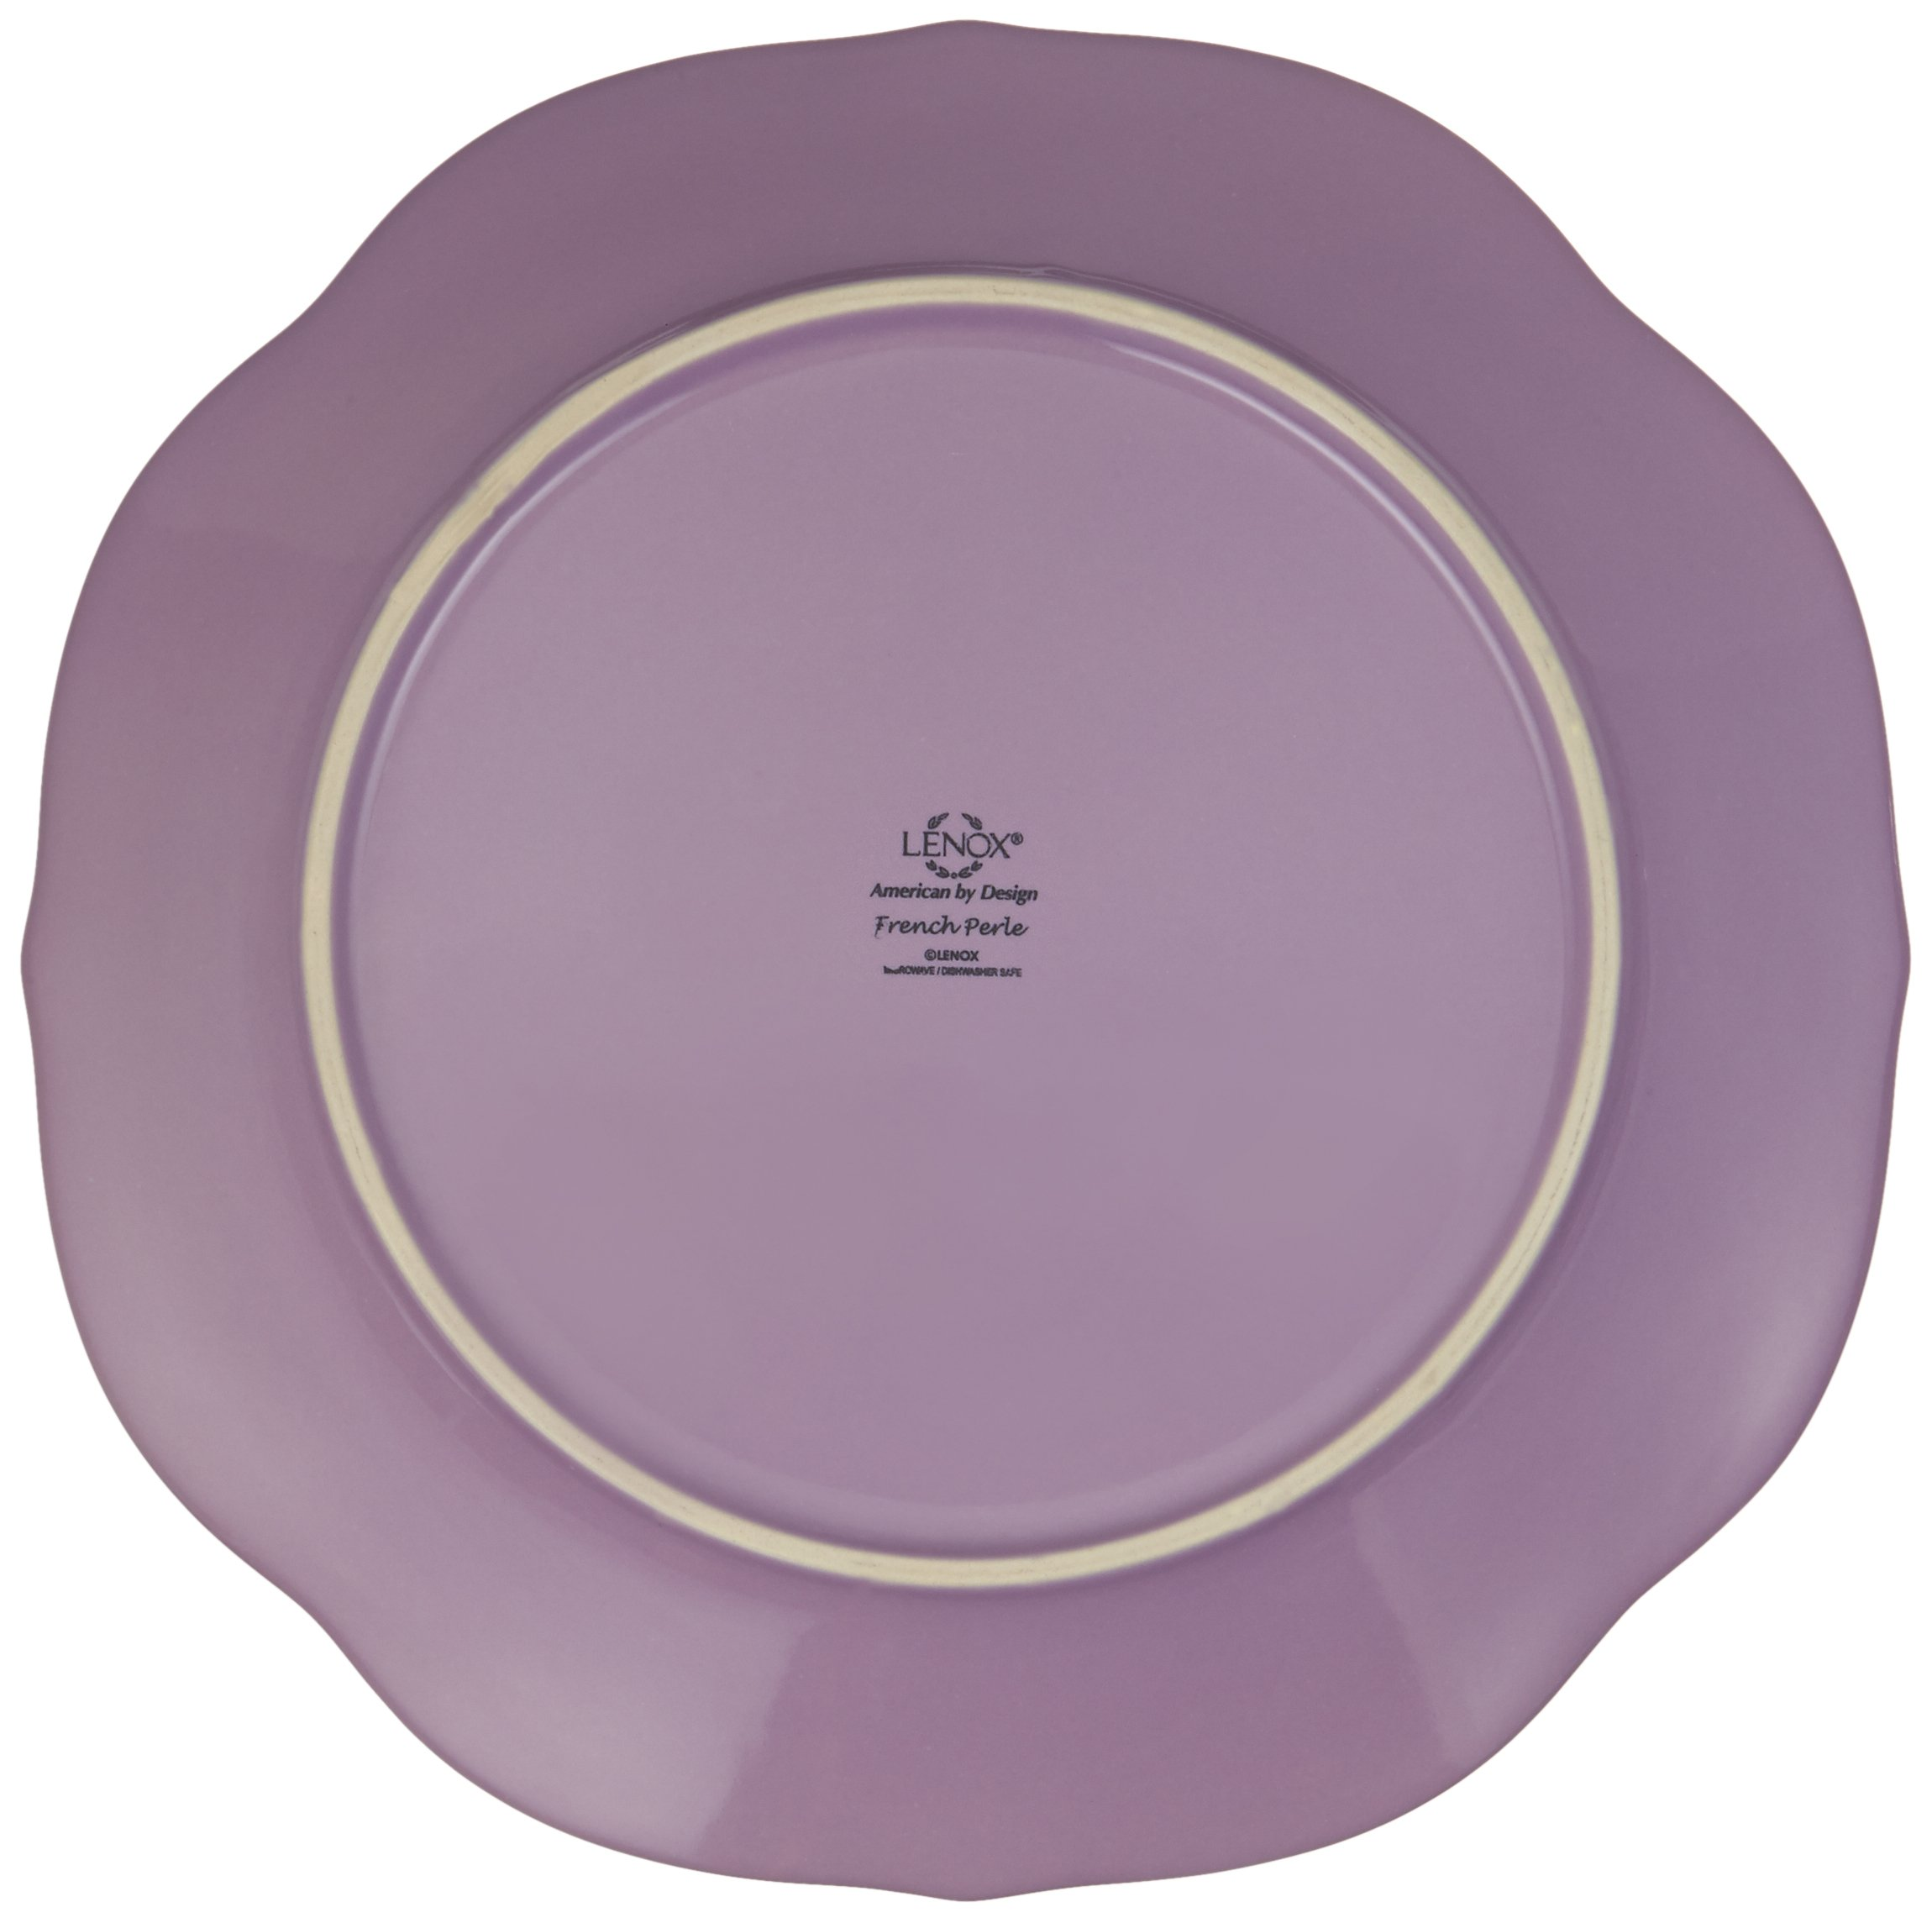 Lenox 843827 FRENCH PERLE VIOLET DW DINNER PLATE - Pack of 4 by Lenox (Image #3)